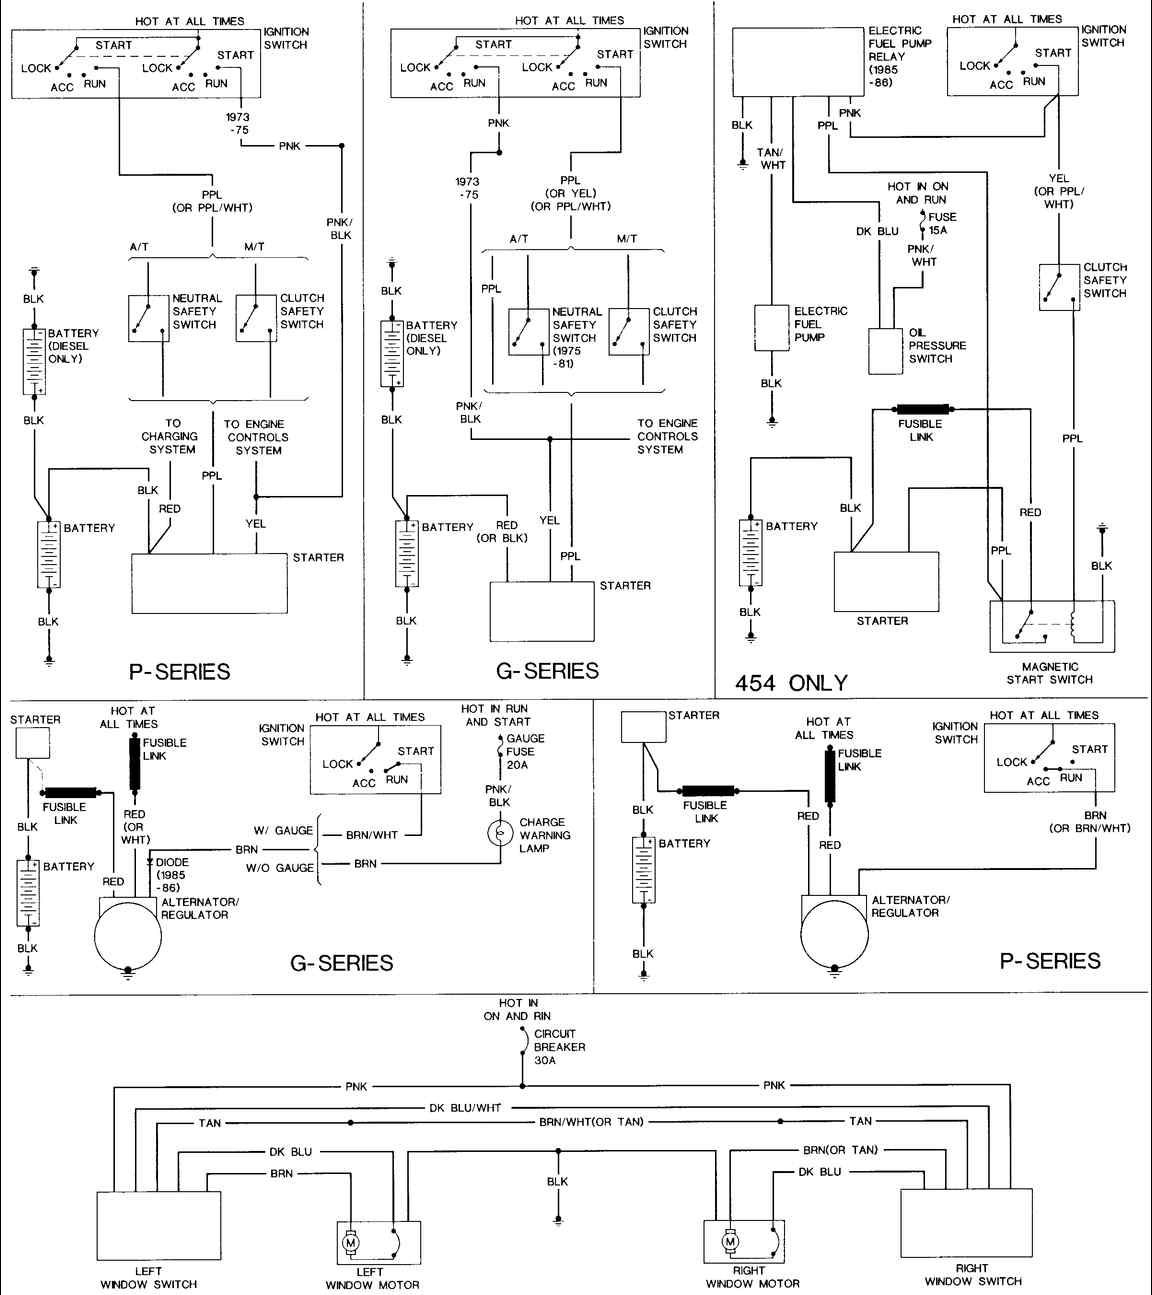 1979 gmc wiring diagram electrical schematics diagram rh culturetearoom com 1979 yamaha xt500 wiring diagram 1979 [ 1152 x 1295 Pixel ]